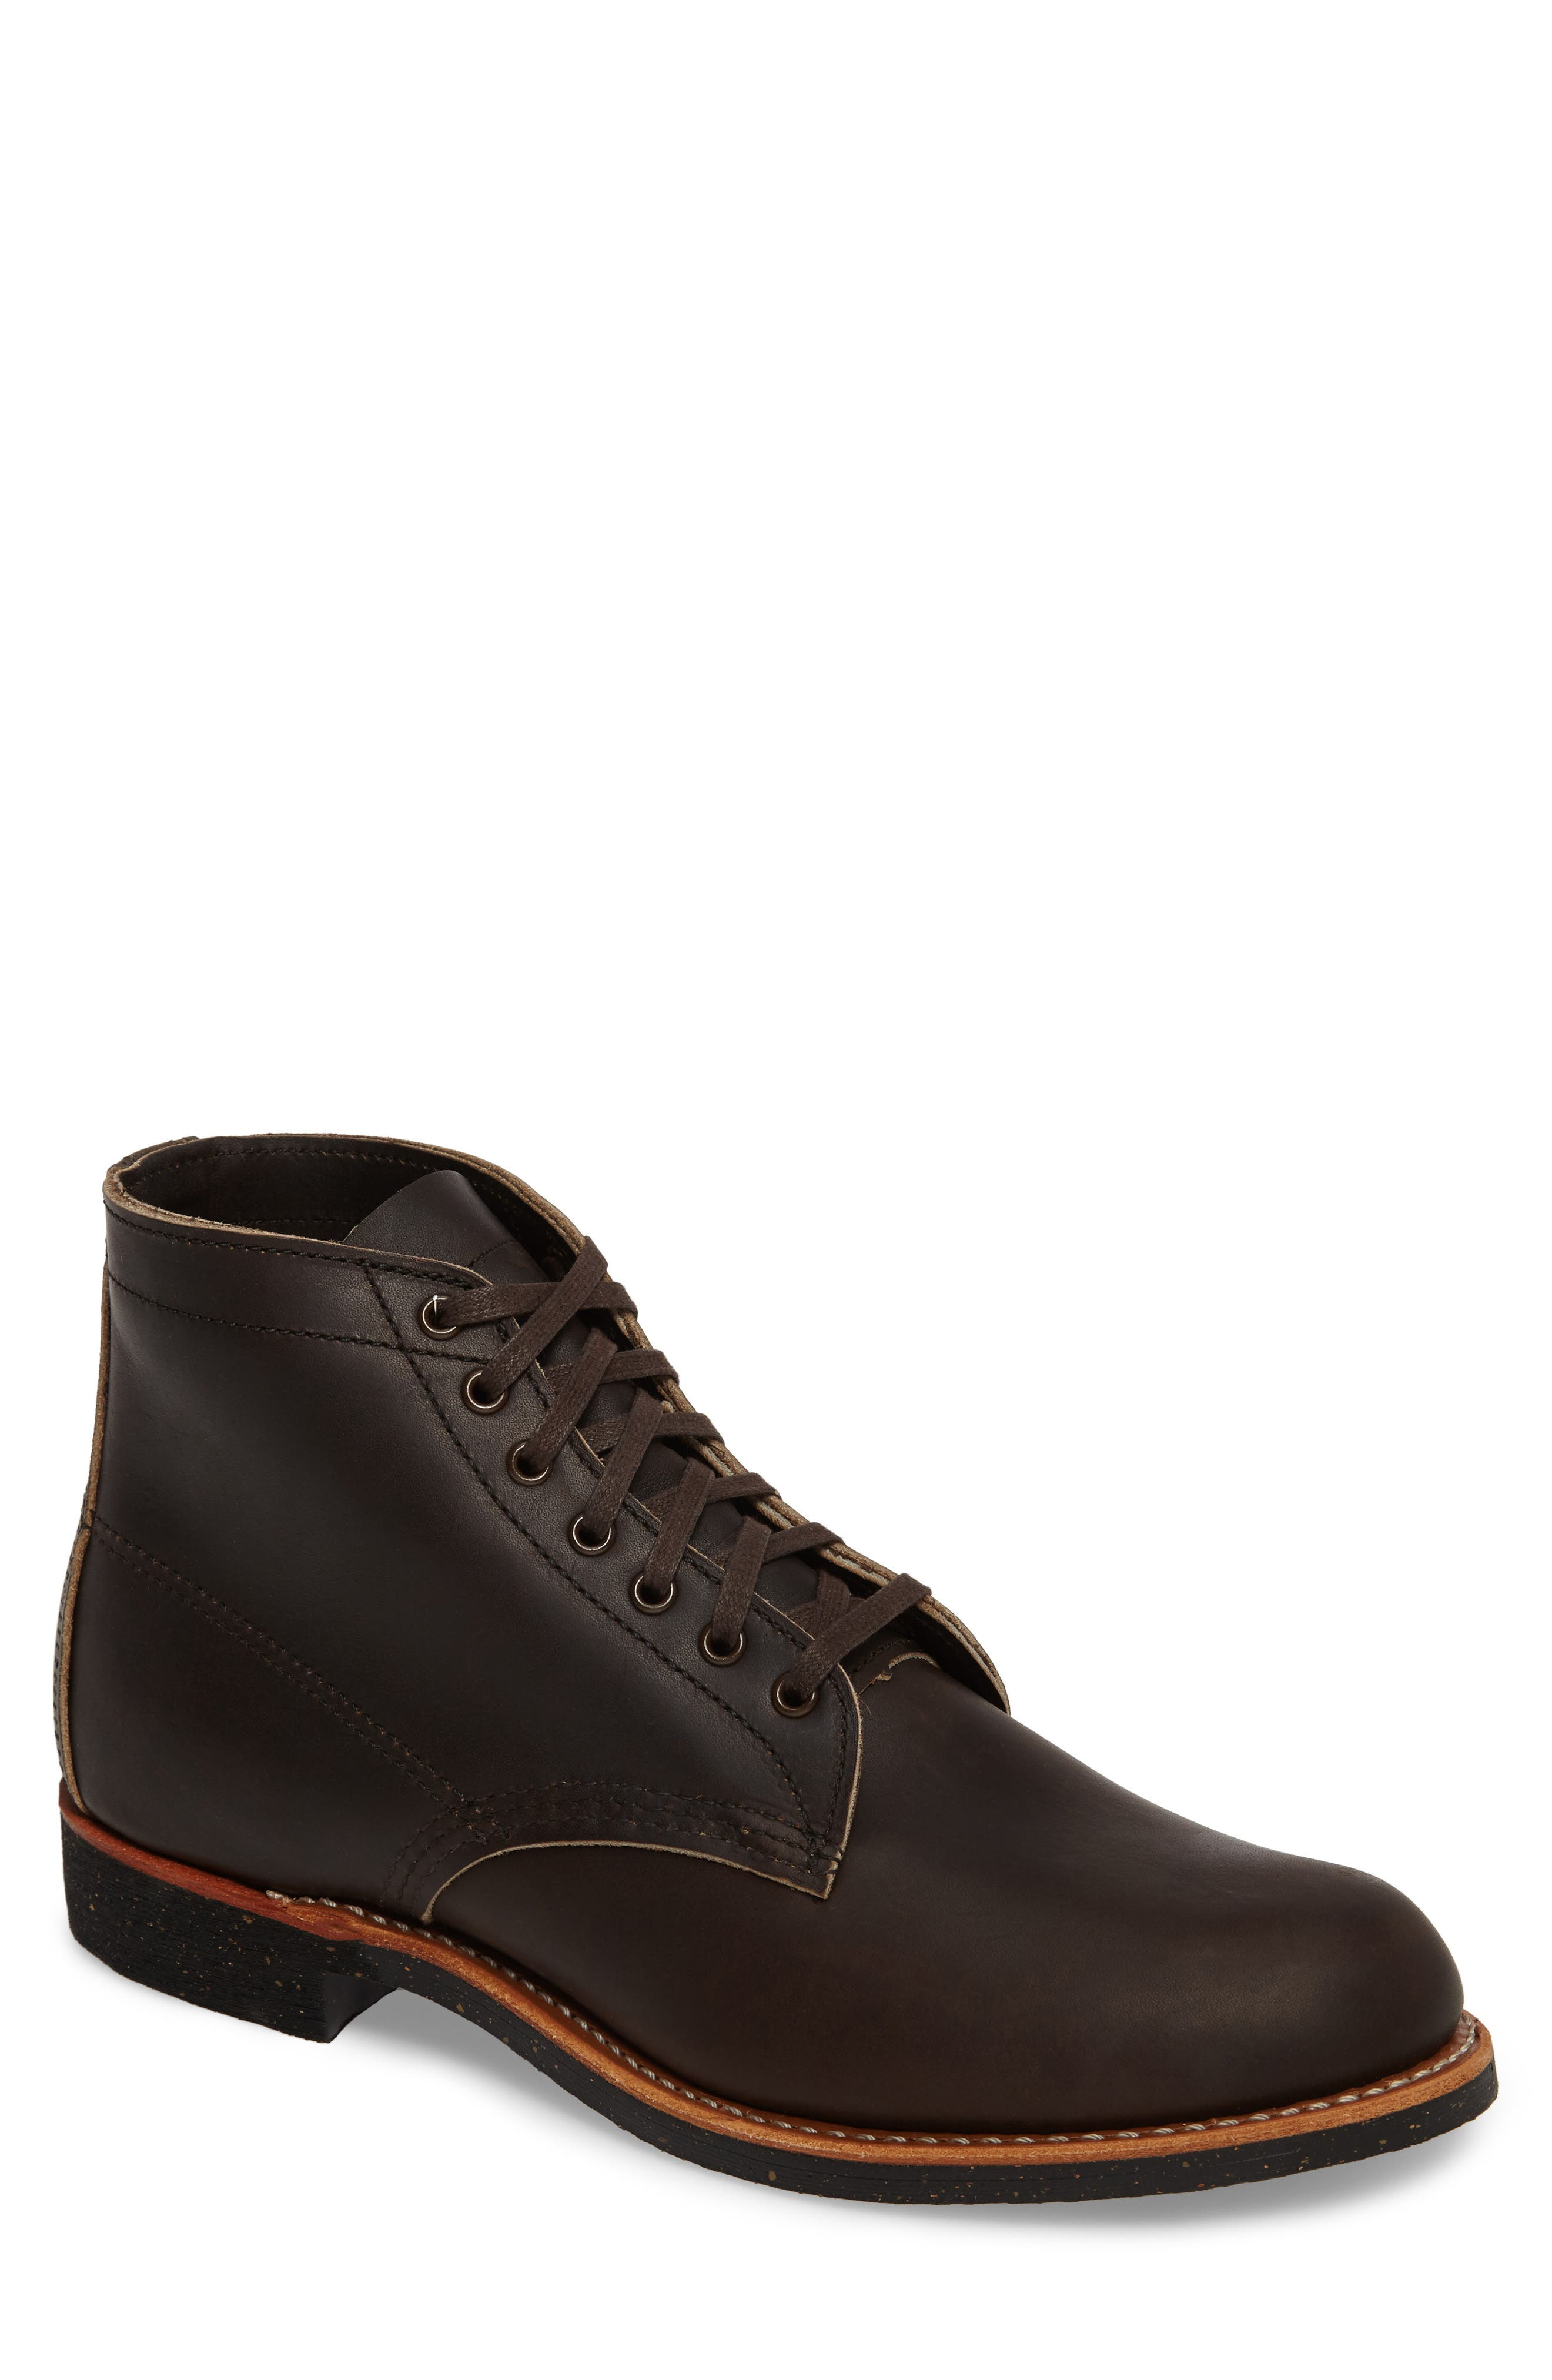 Red Wing Merchant Boot, Brown